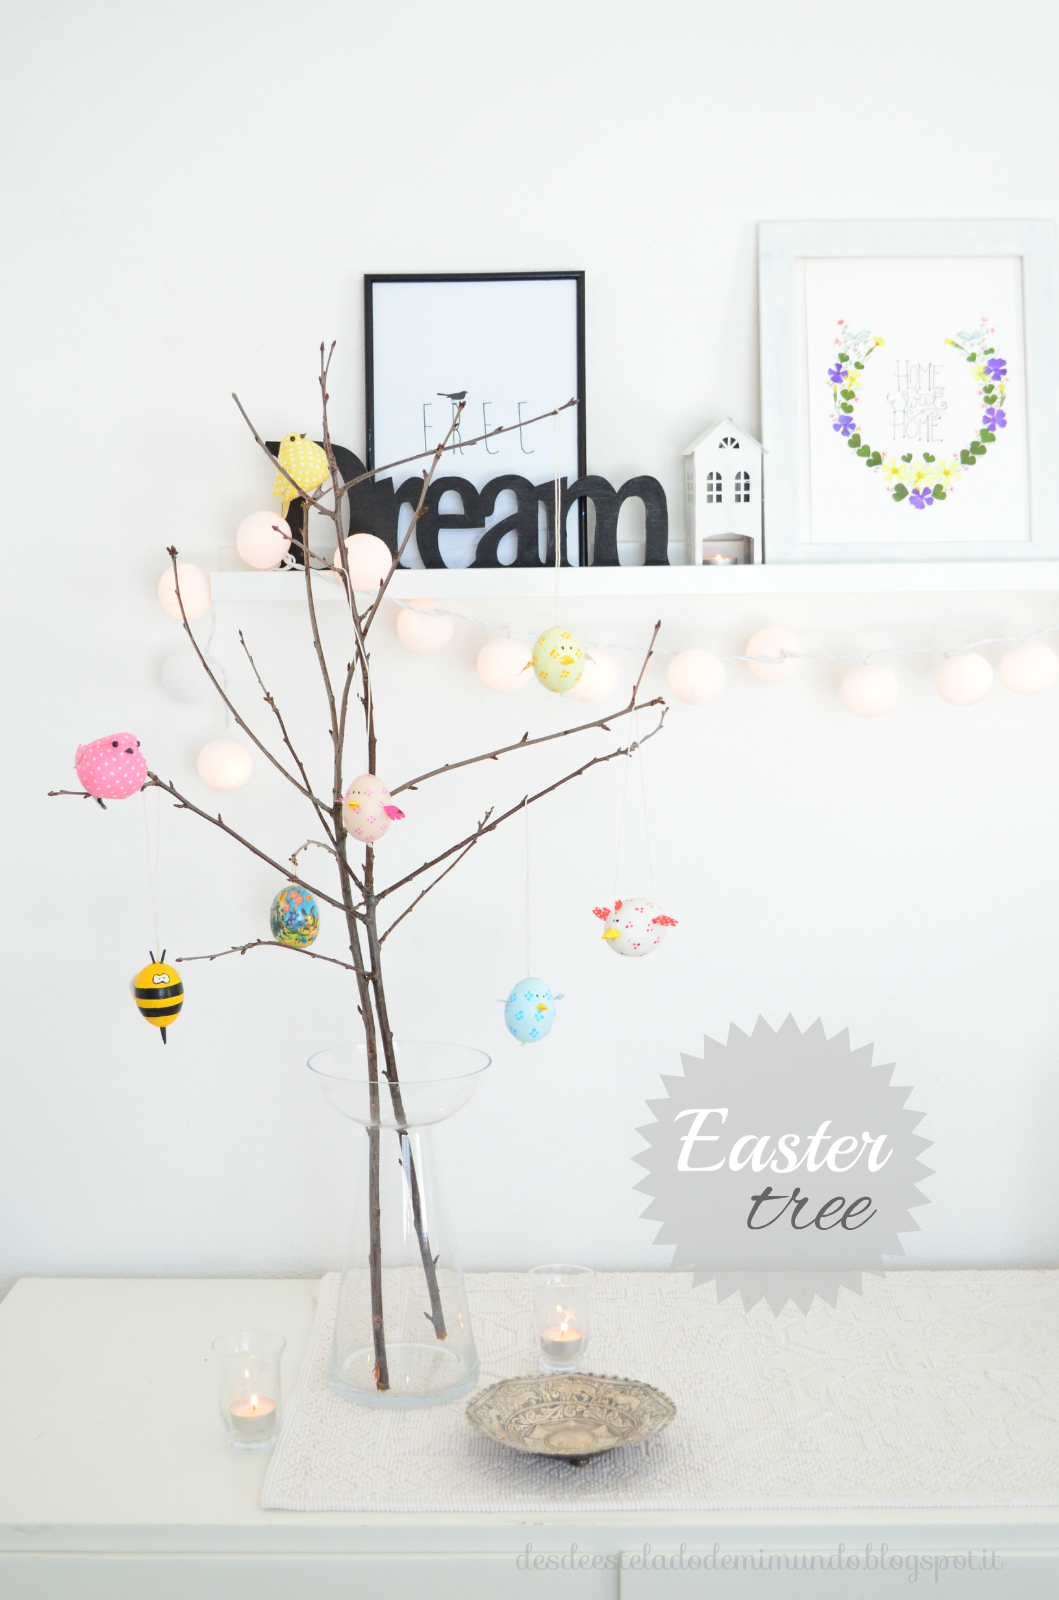 easter tree desdeesteladodemimundo.blogspot.it